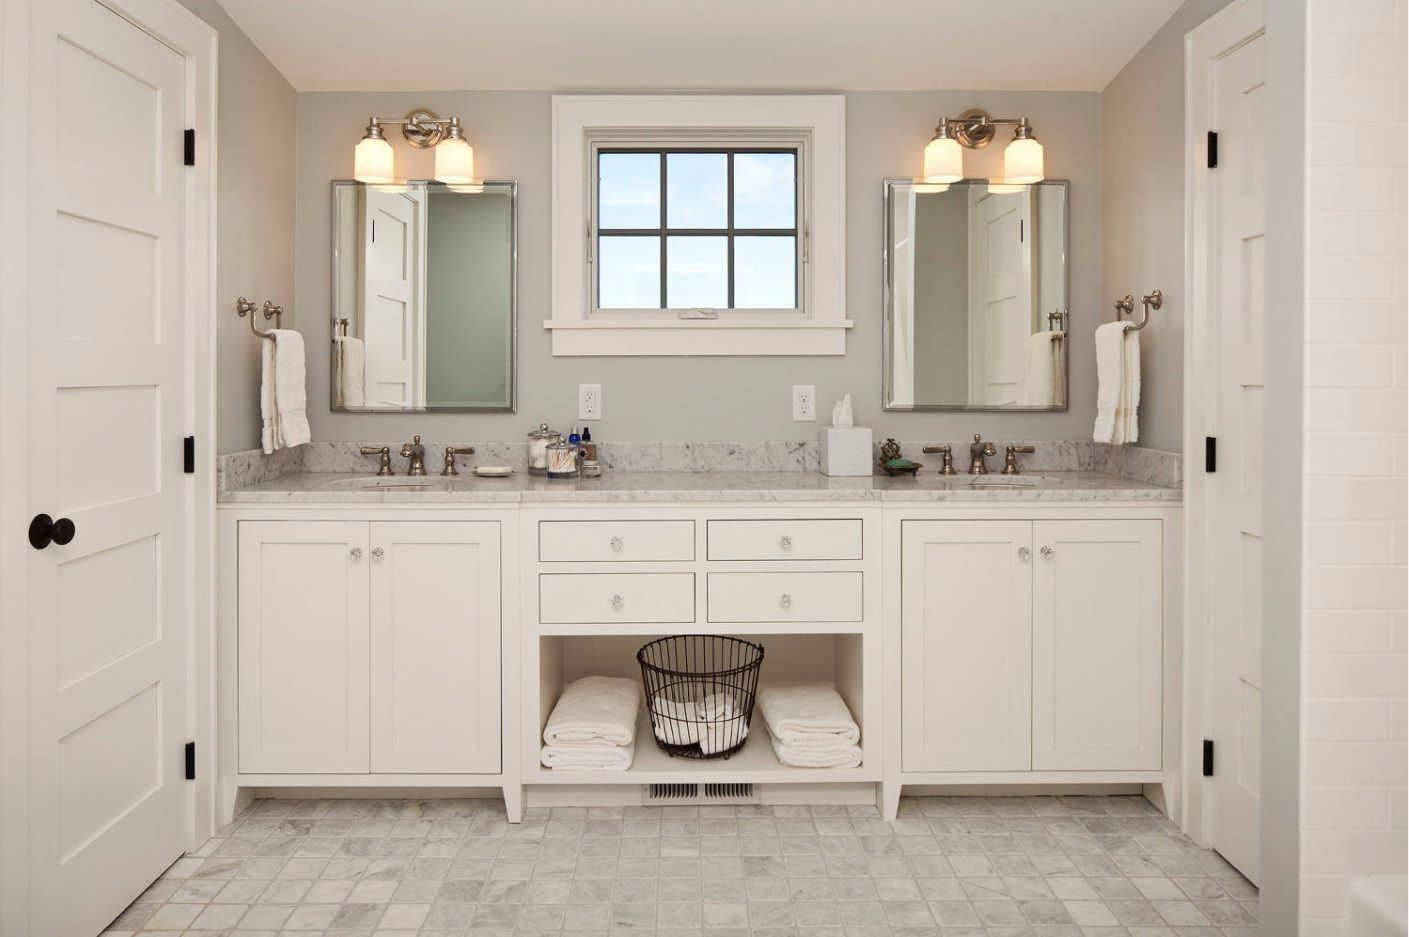 Jack and Jill Bathroom Interior Design Ideas. Creamy white color scheme and the monolith vanity with two sinks and storage